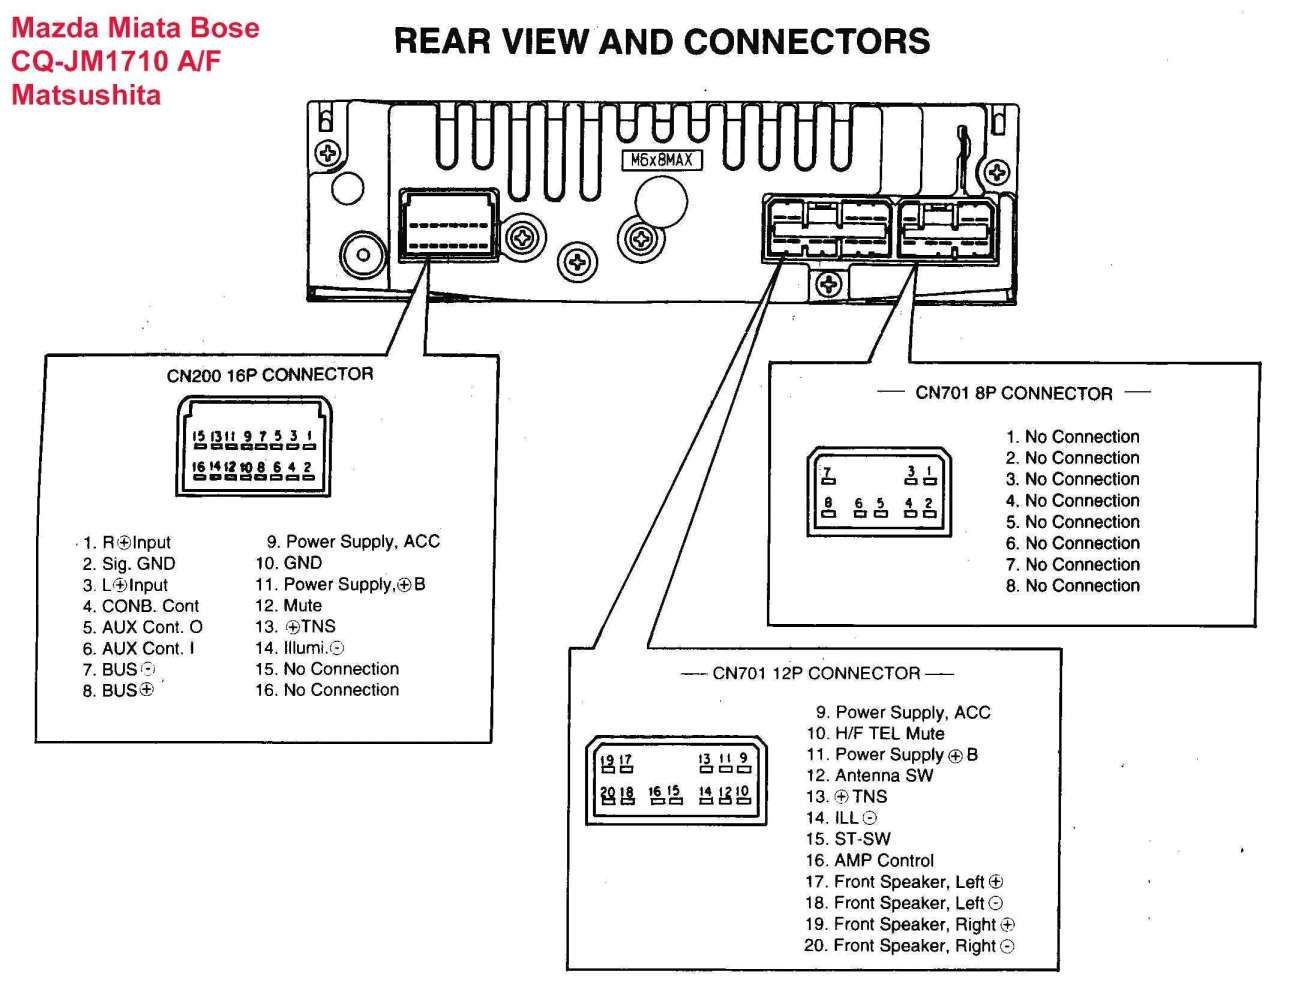 15 Jensen Car Stereo Wiring Diagram Car Diagram Wiringg Net Sony Car Stereo Car Stereo Systems Car Stereo